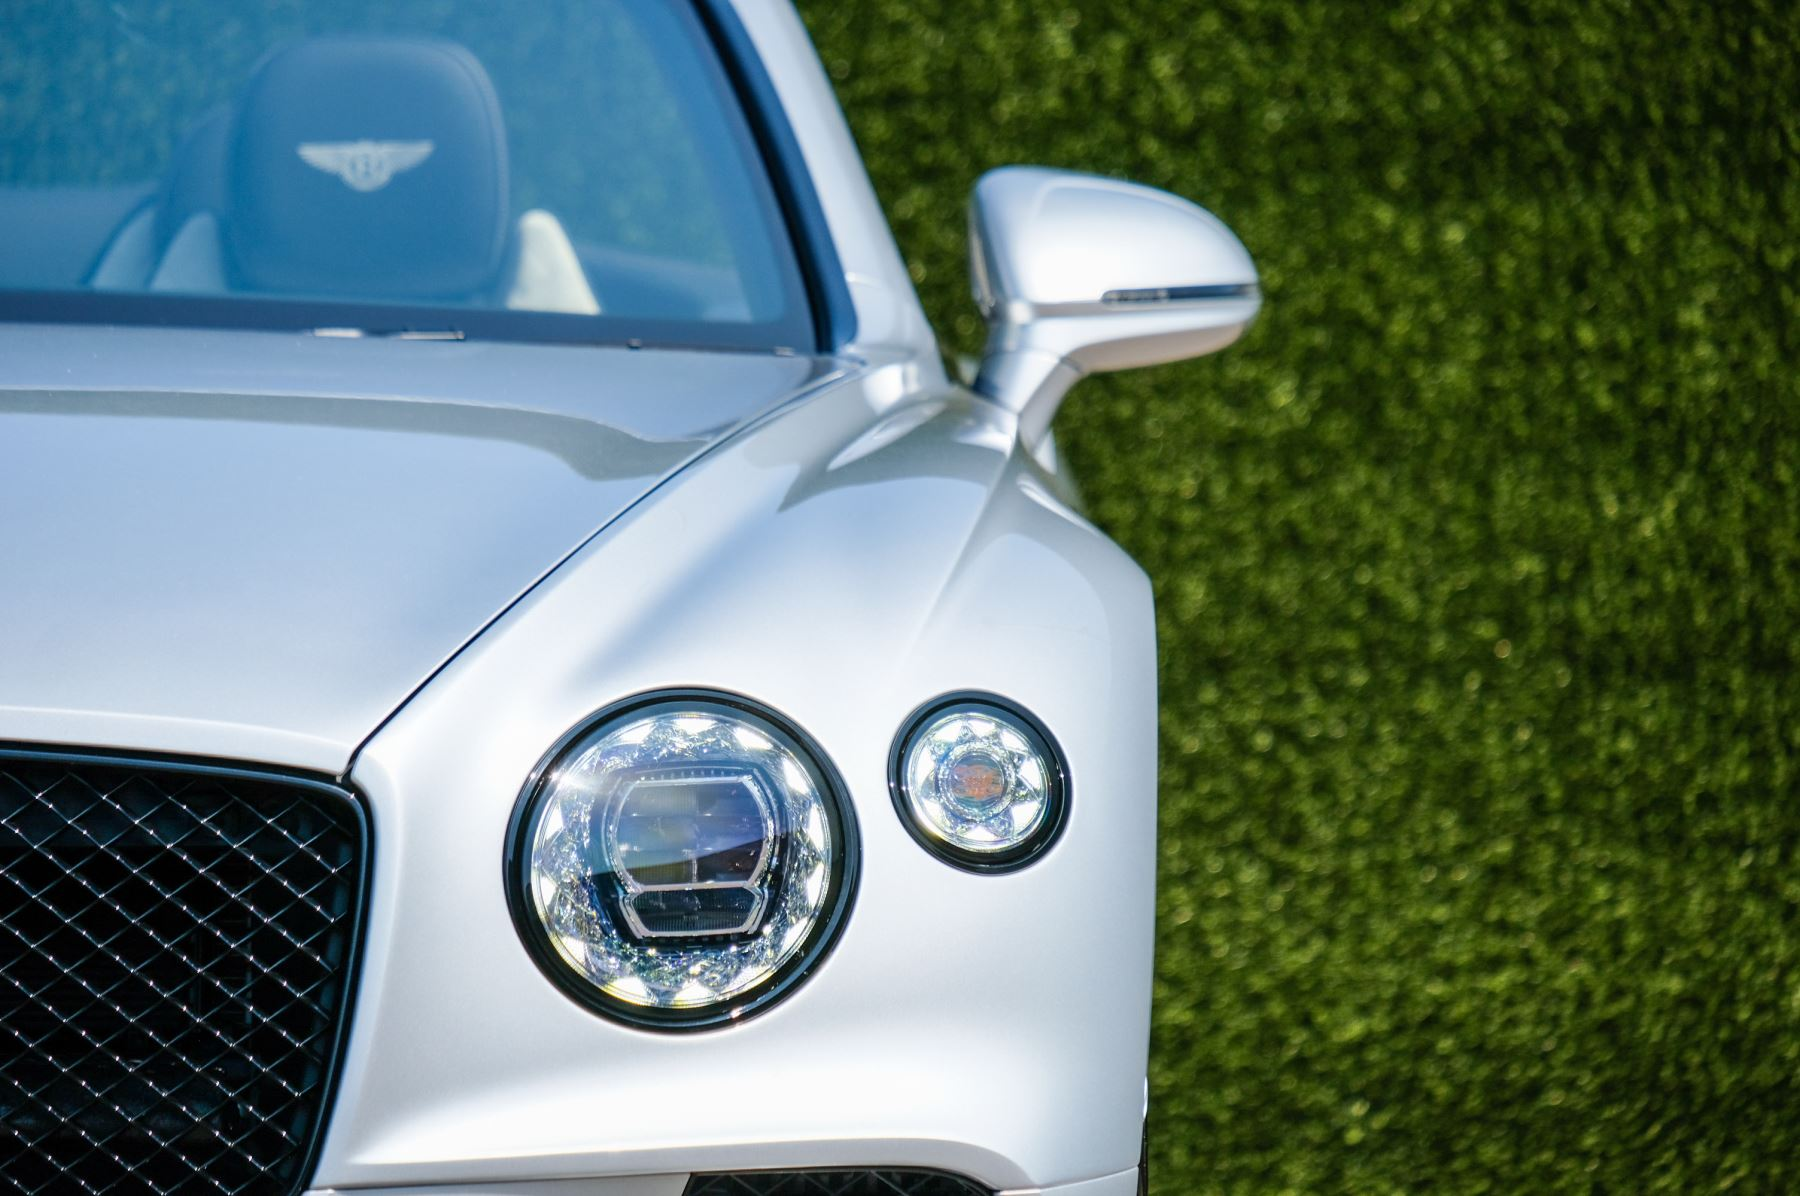 Bentley Continental GTC 4.0 V8 - Mulliner Driving Specification and Blackline Specification with 22 Inch Alloys image 6